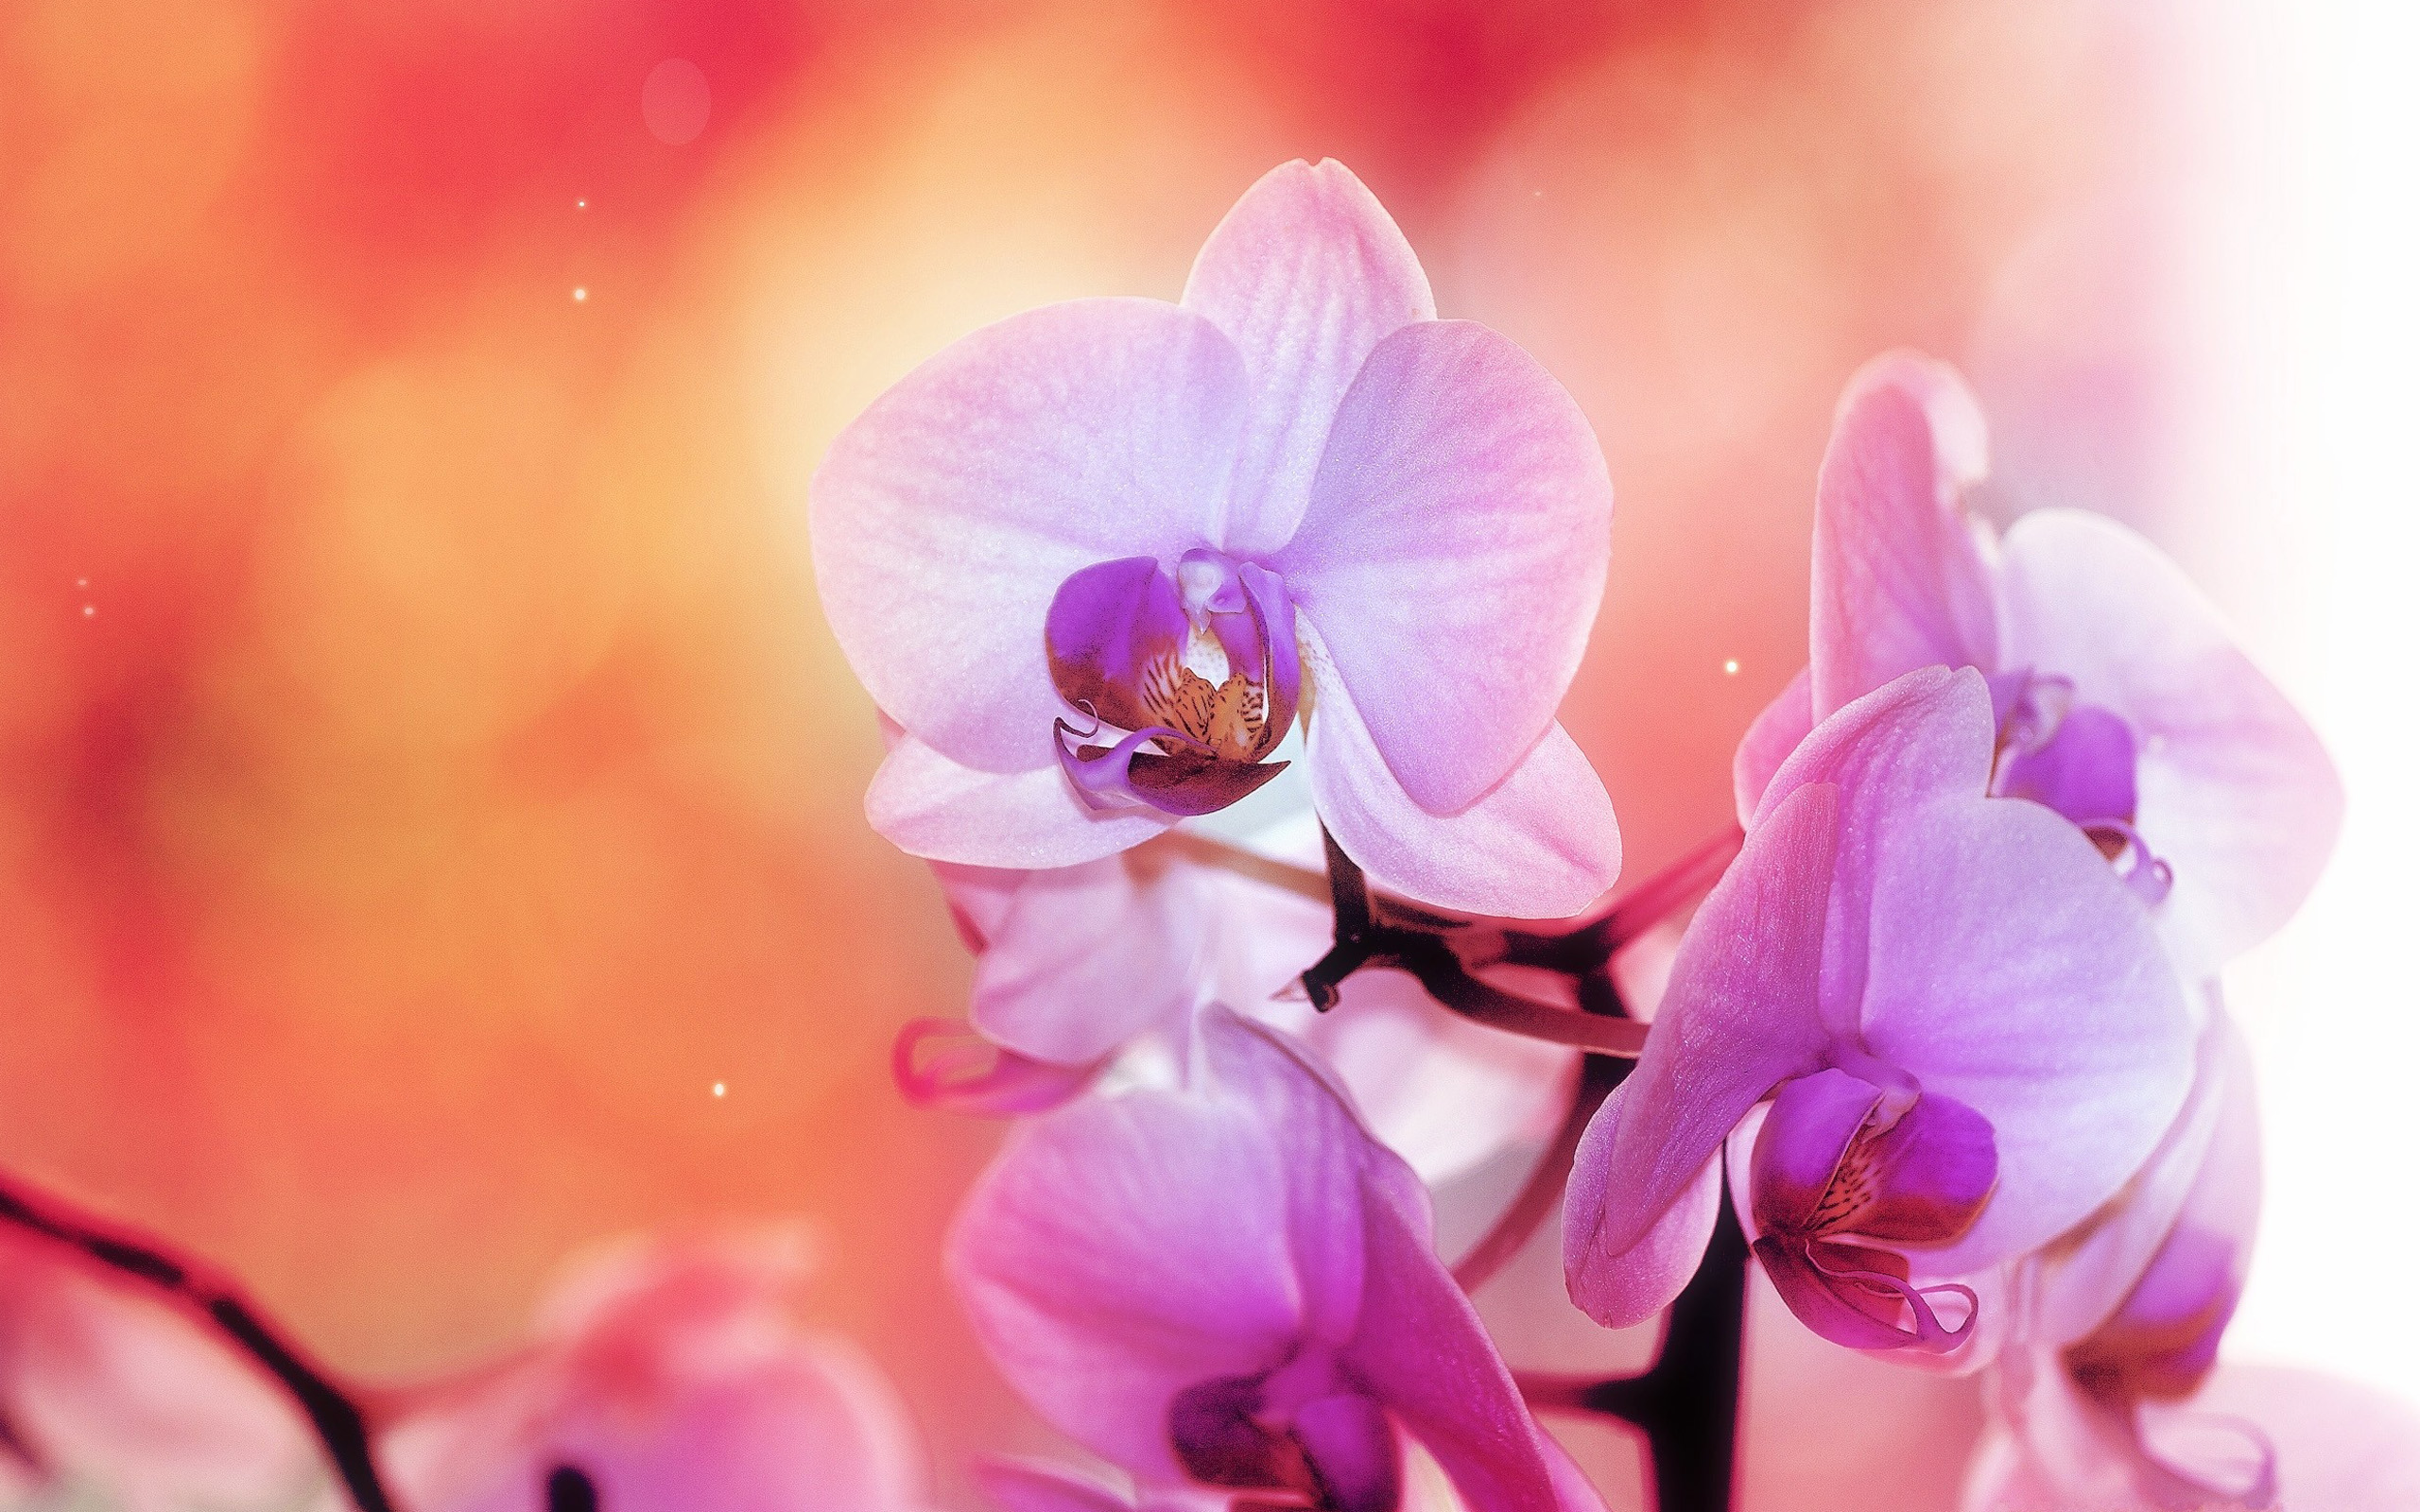 Habrumalas orchids in water wallpaper images - Orchid Wallpaper